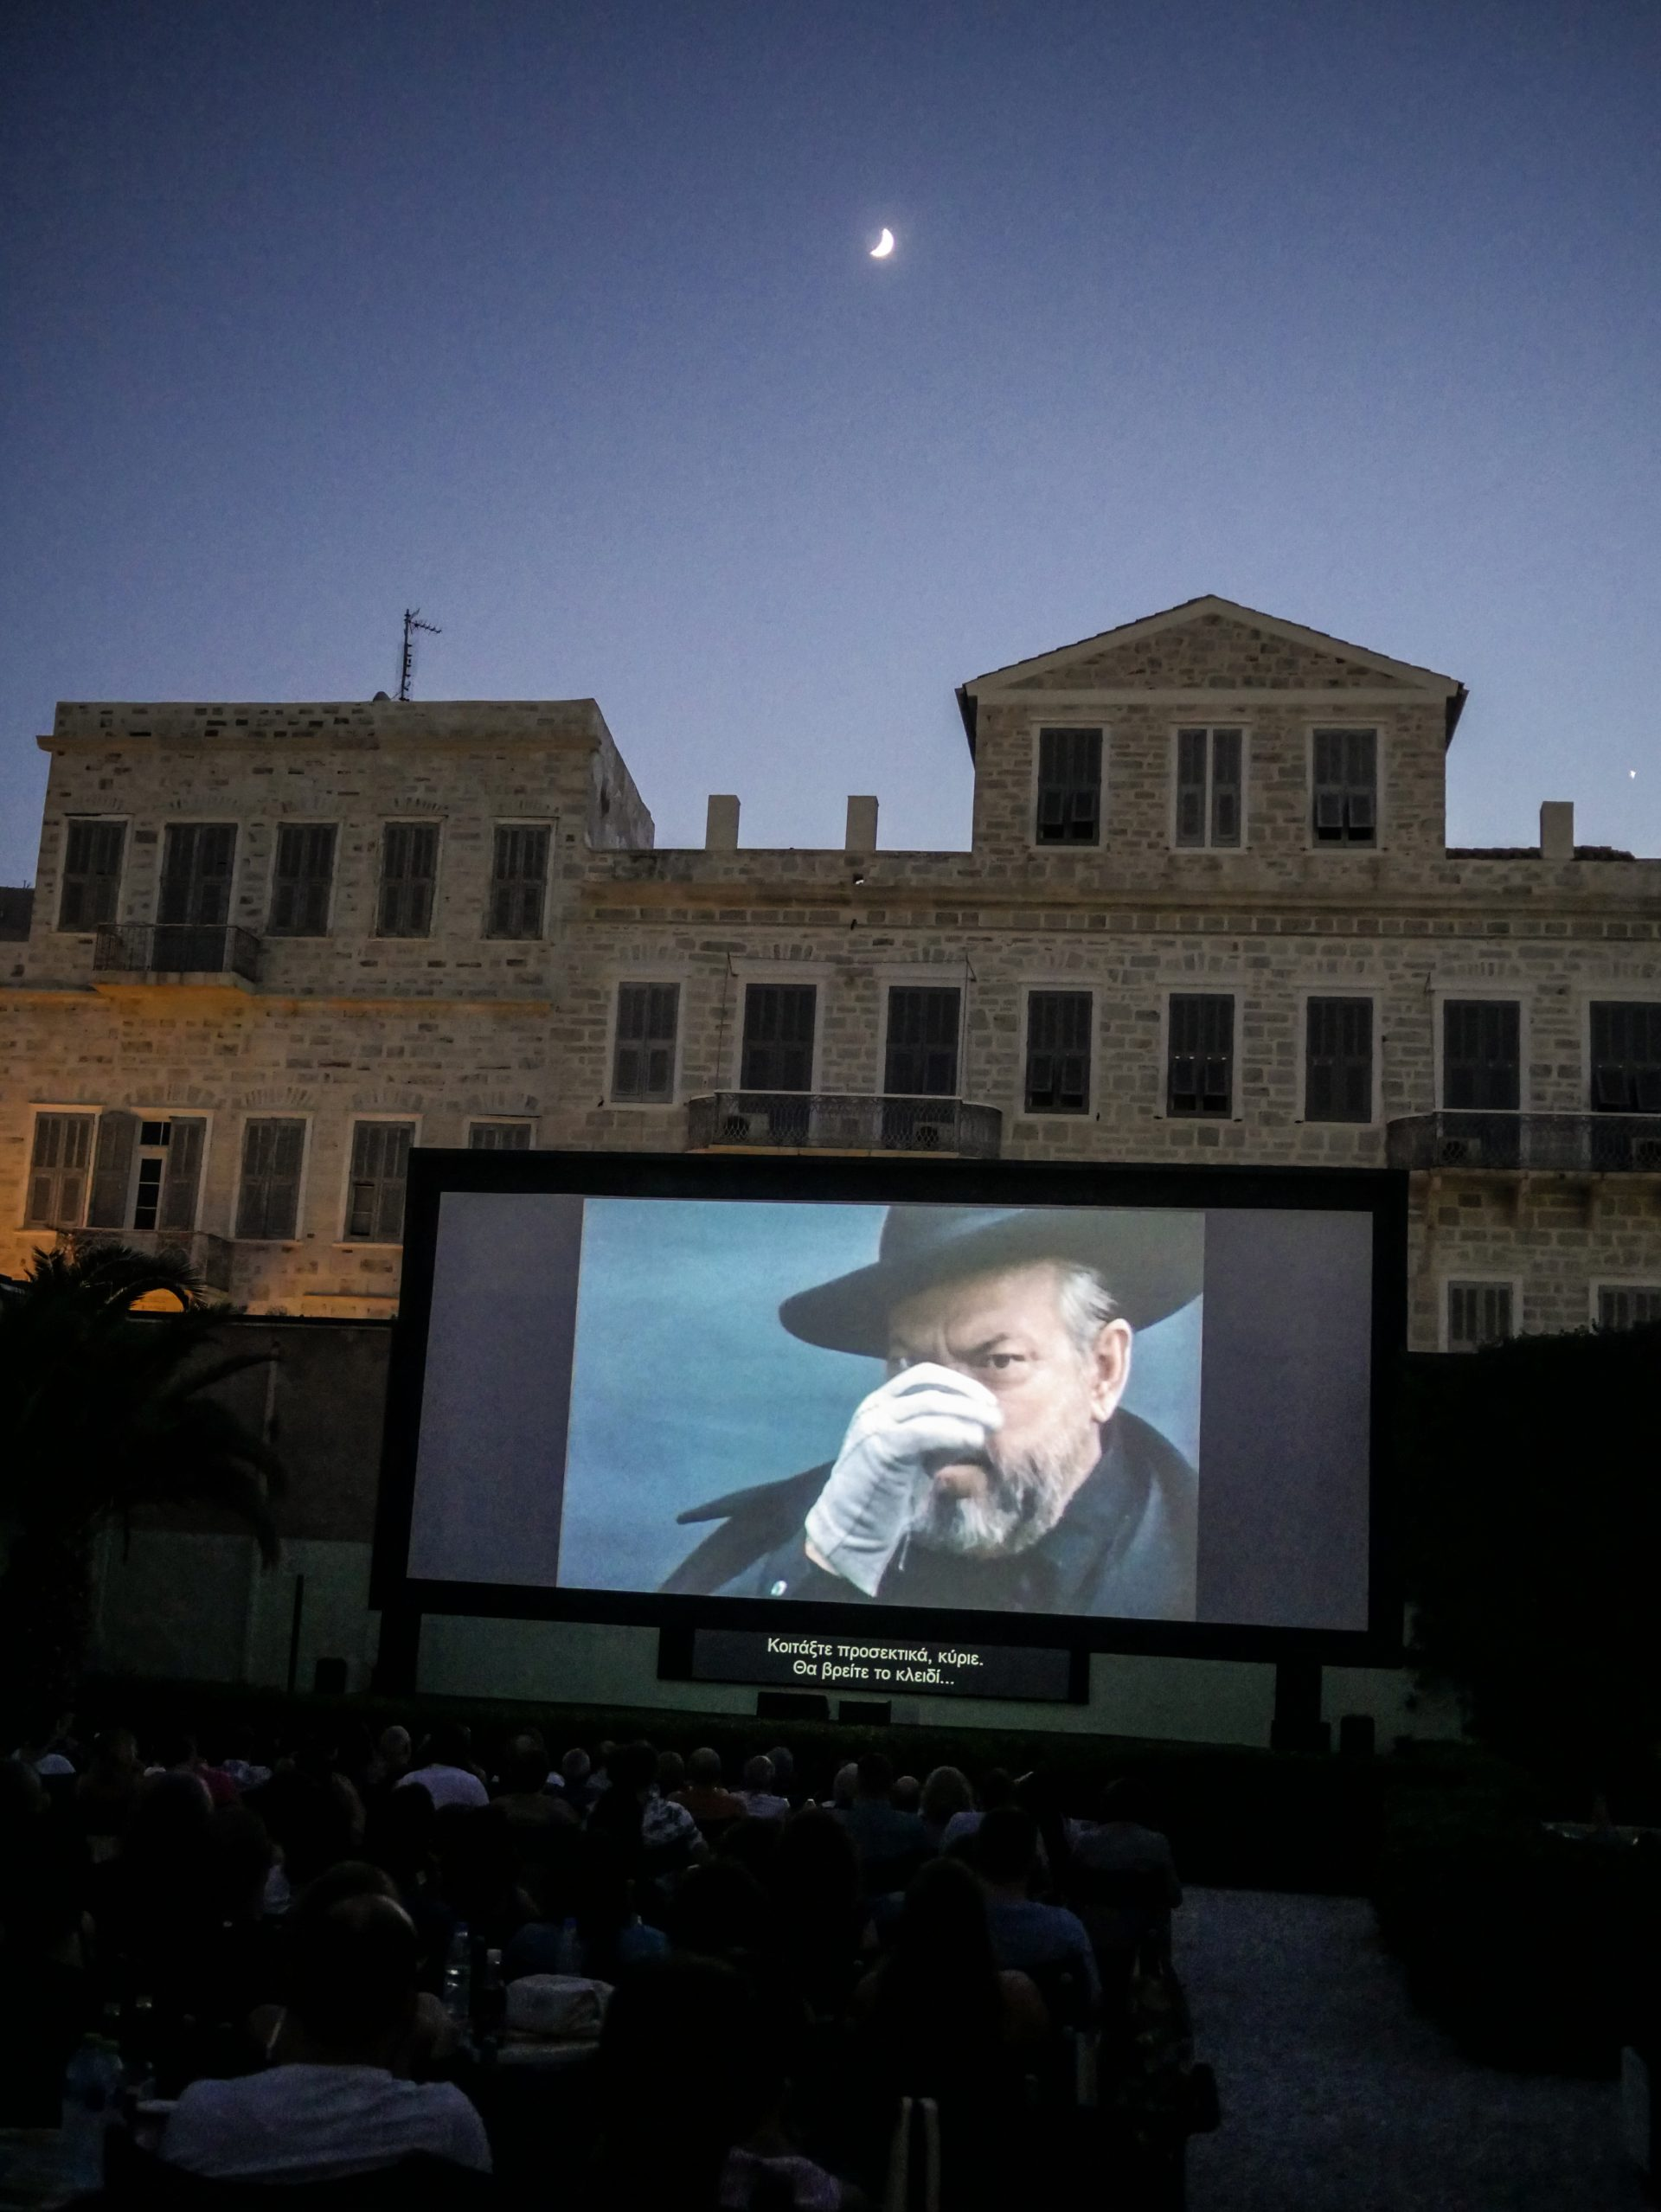 Orson Wellles's F for Fake at Pallas Outdoor Cinema [Photo by Myrto Tzima]